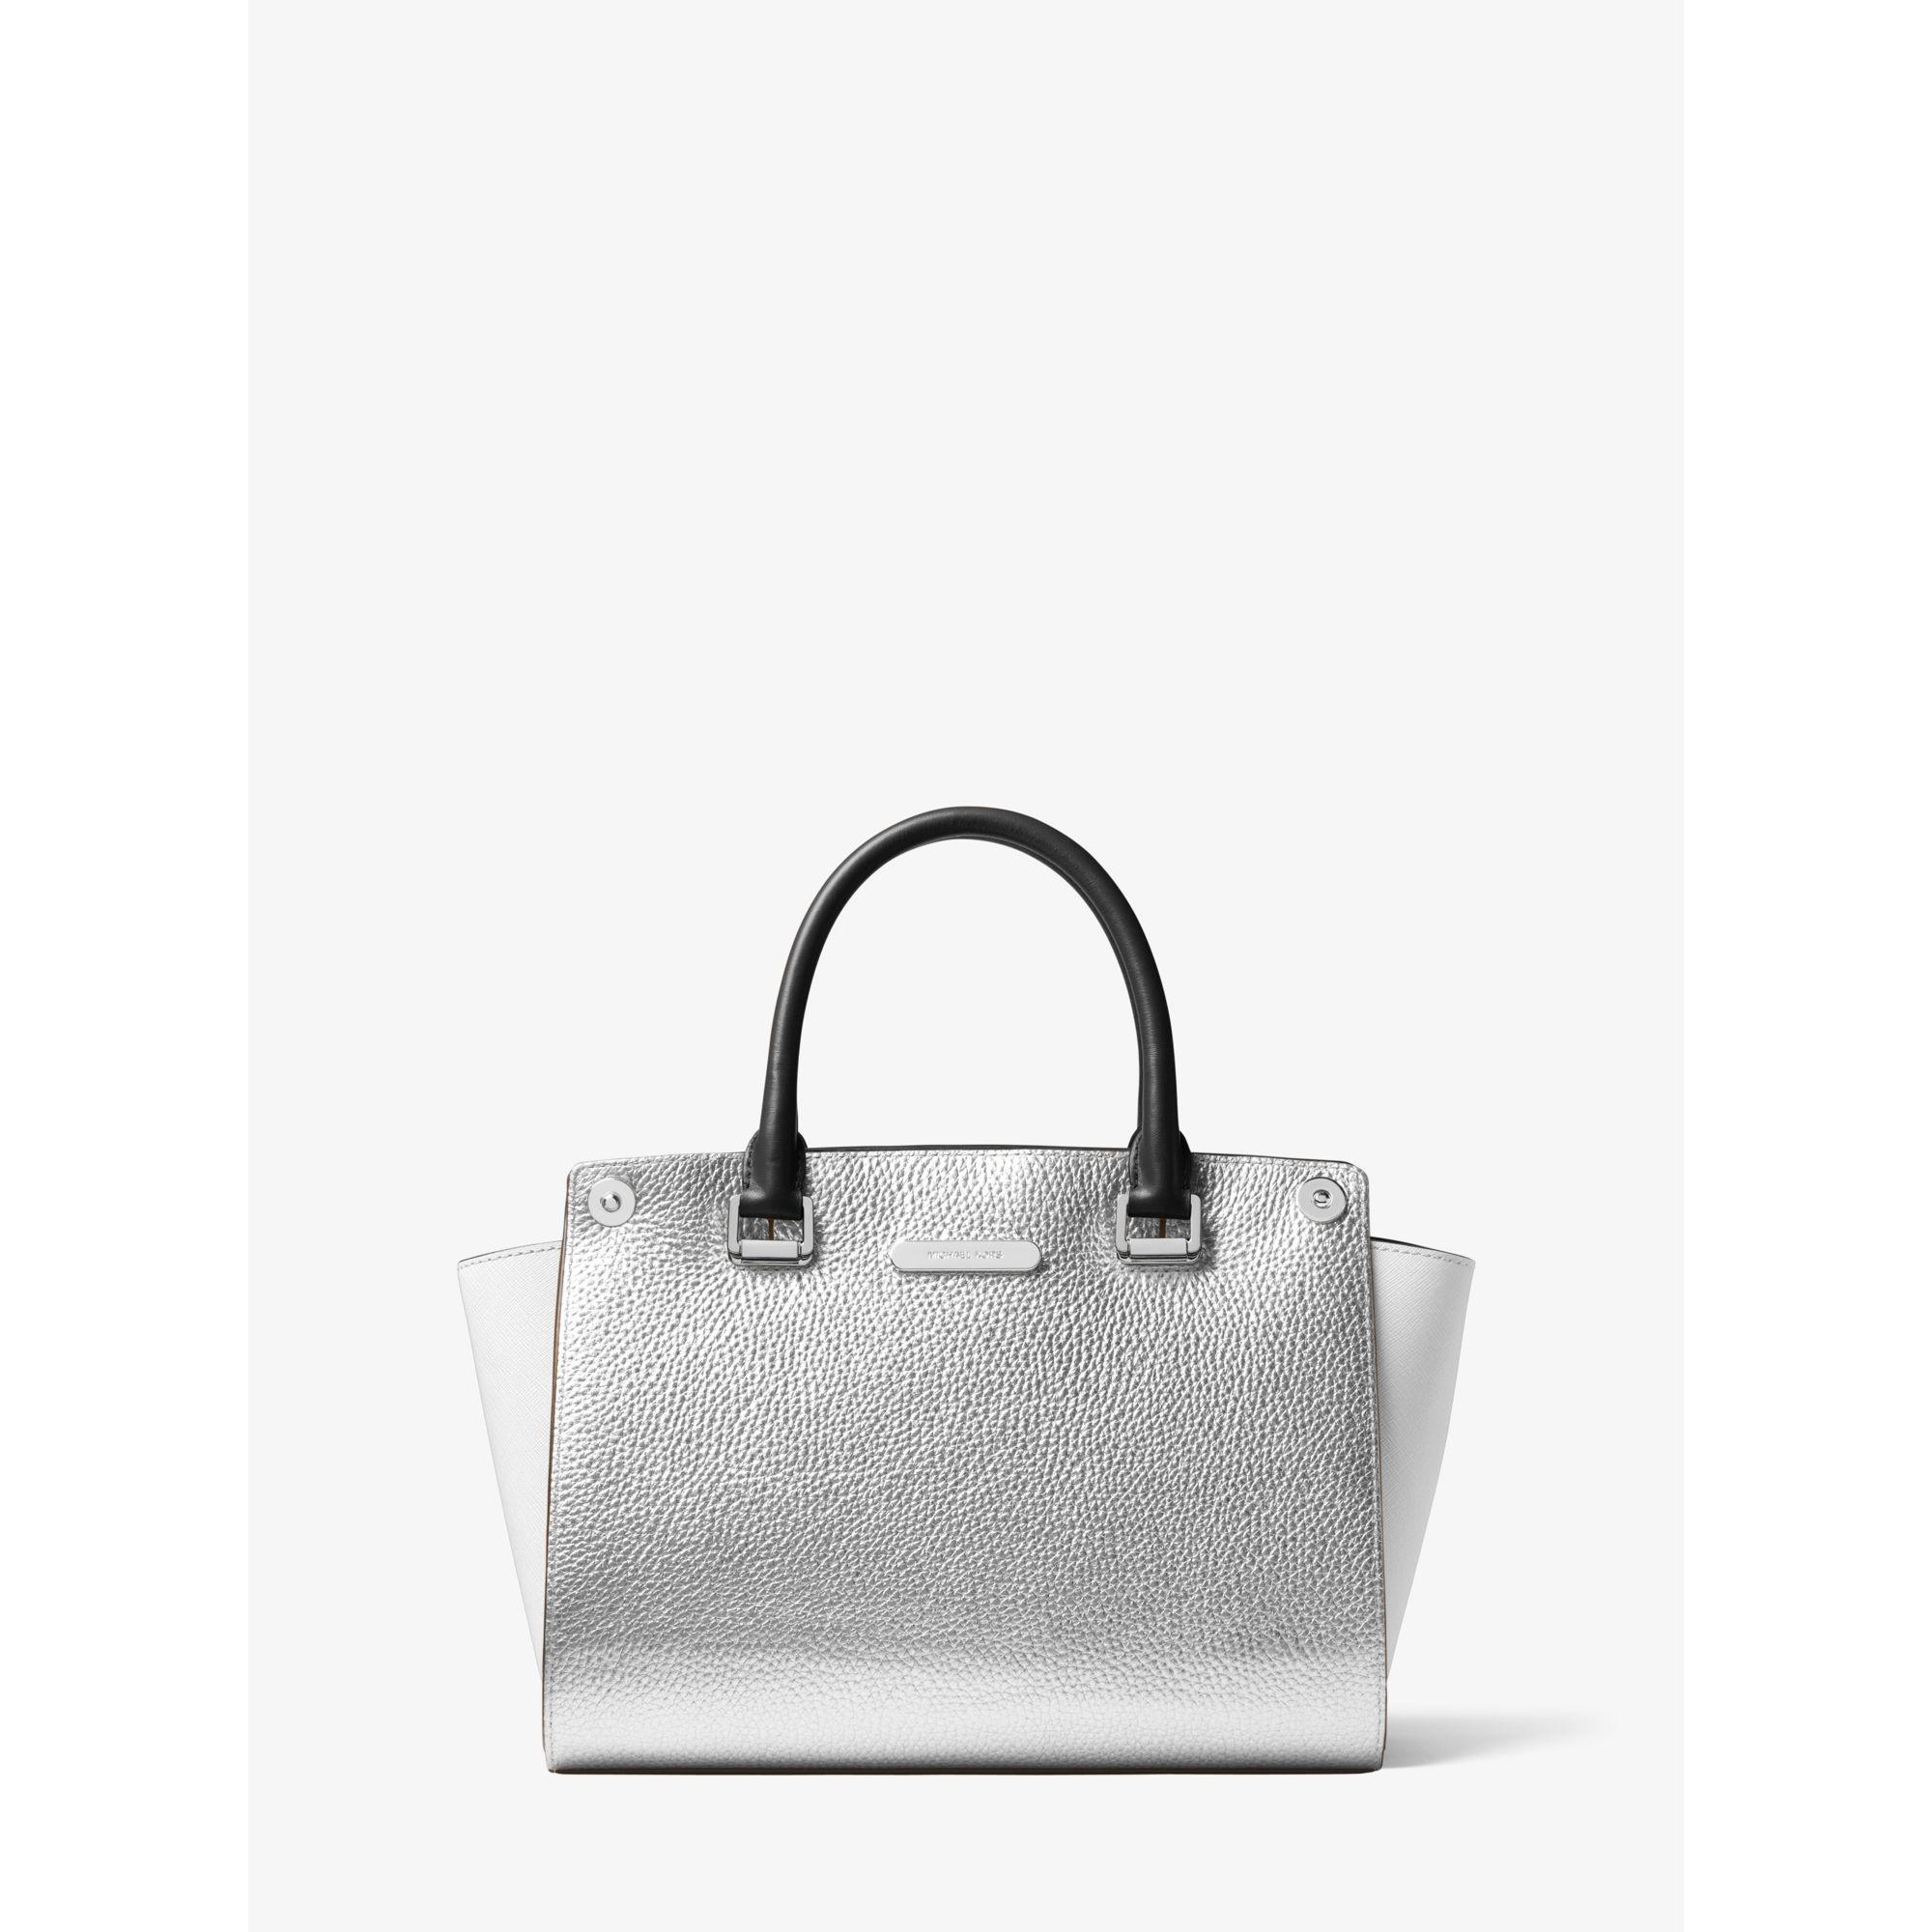 21f8960a59a6c2 Michael Kors Handbags Selma 3 In 1 | Stanford Center for Opportunity ...